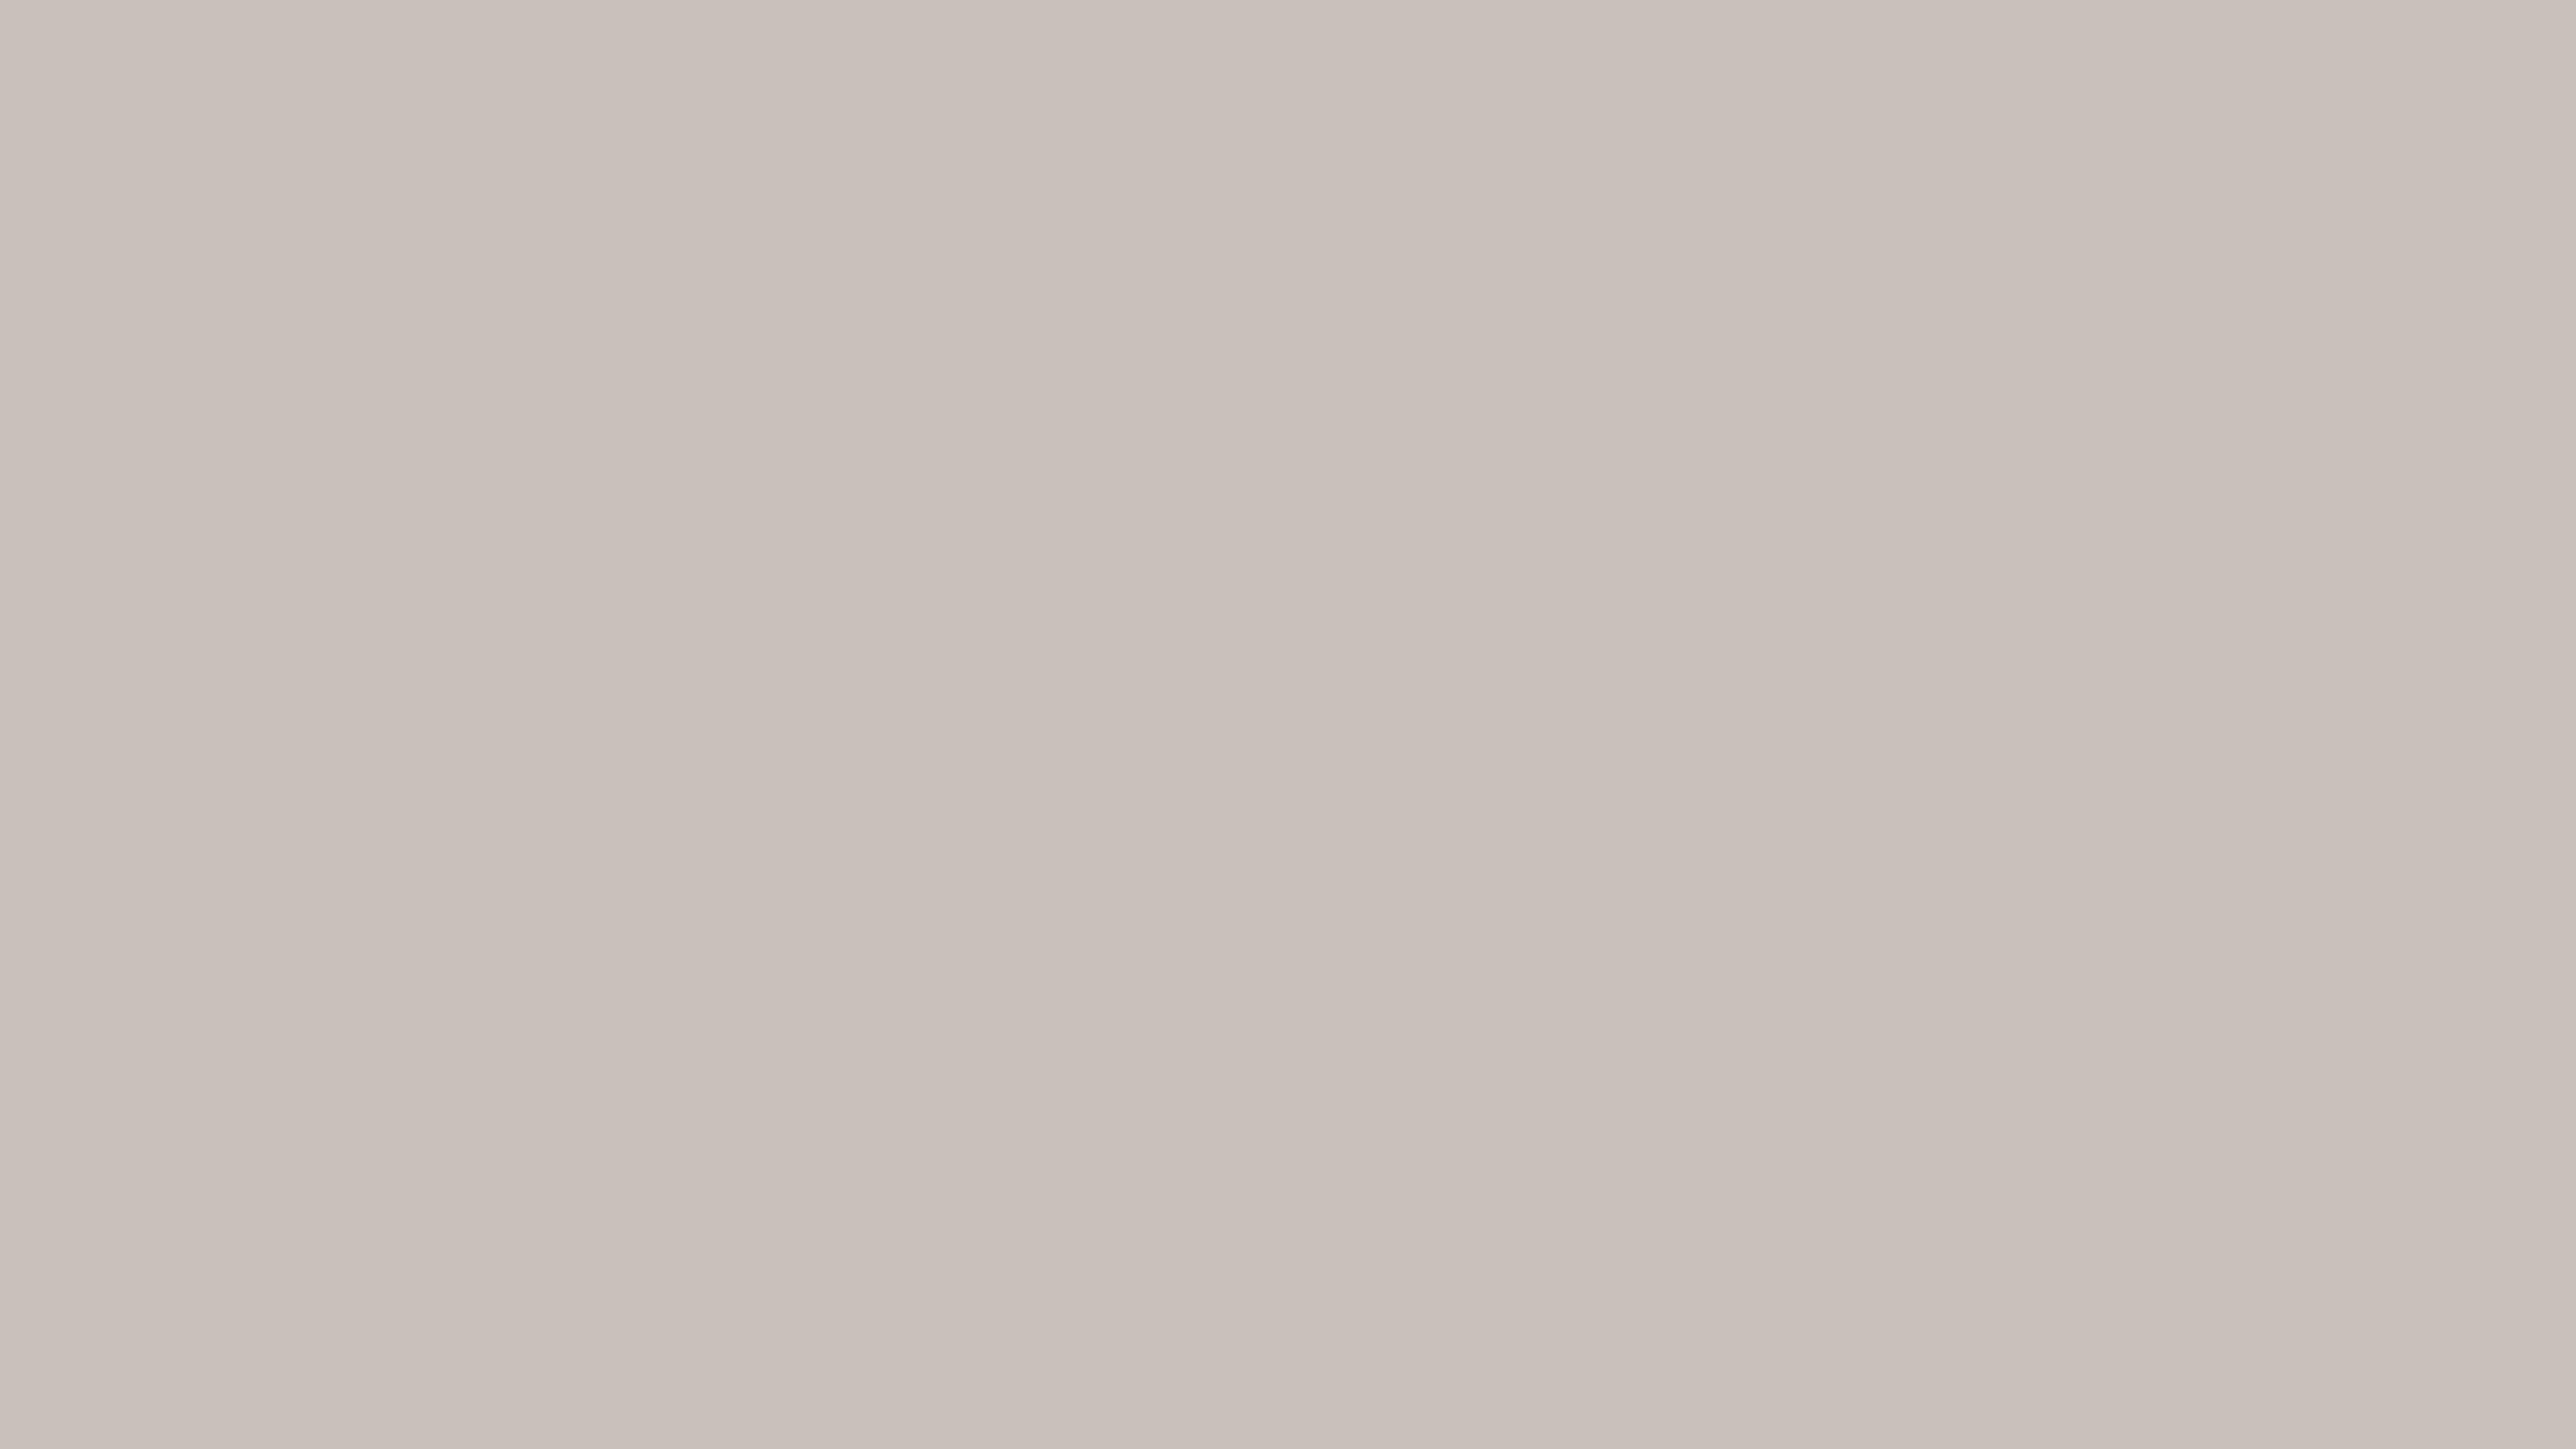 4096x2304 Pale Silver Solid Color Background